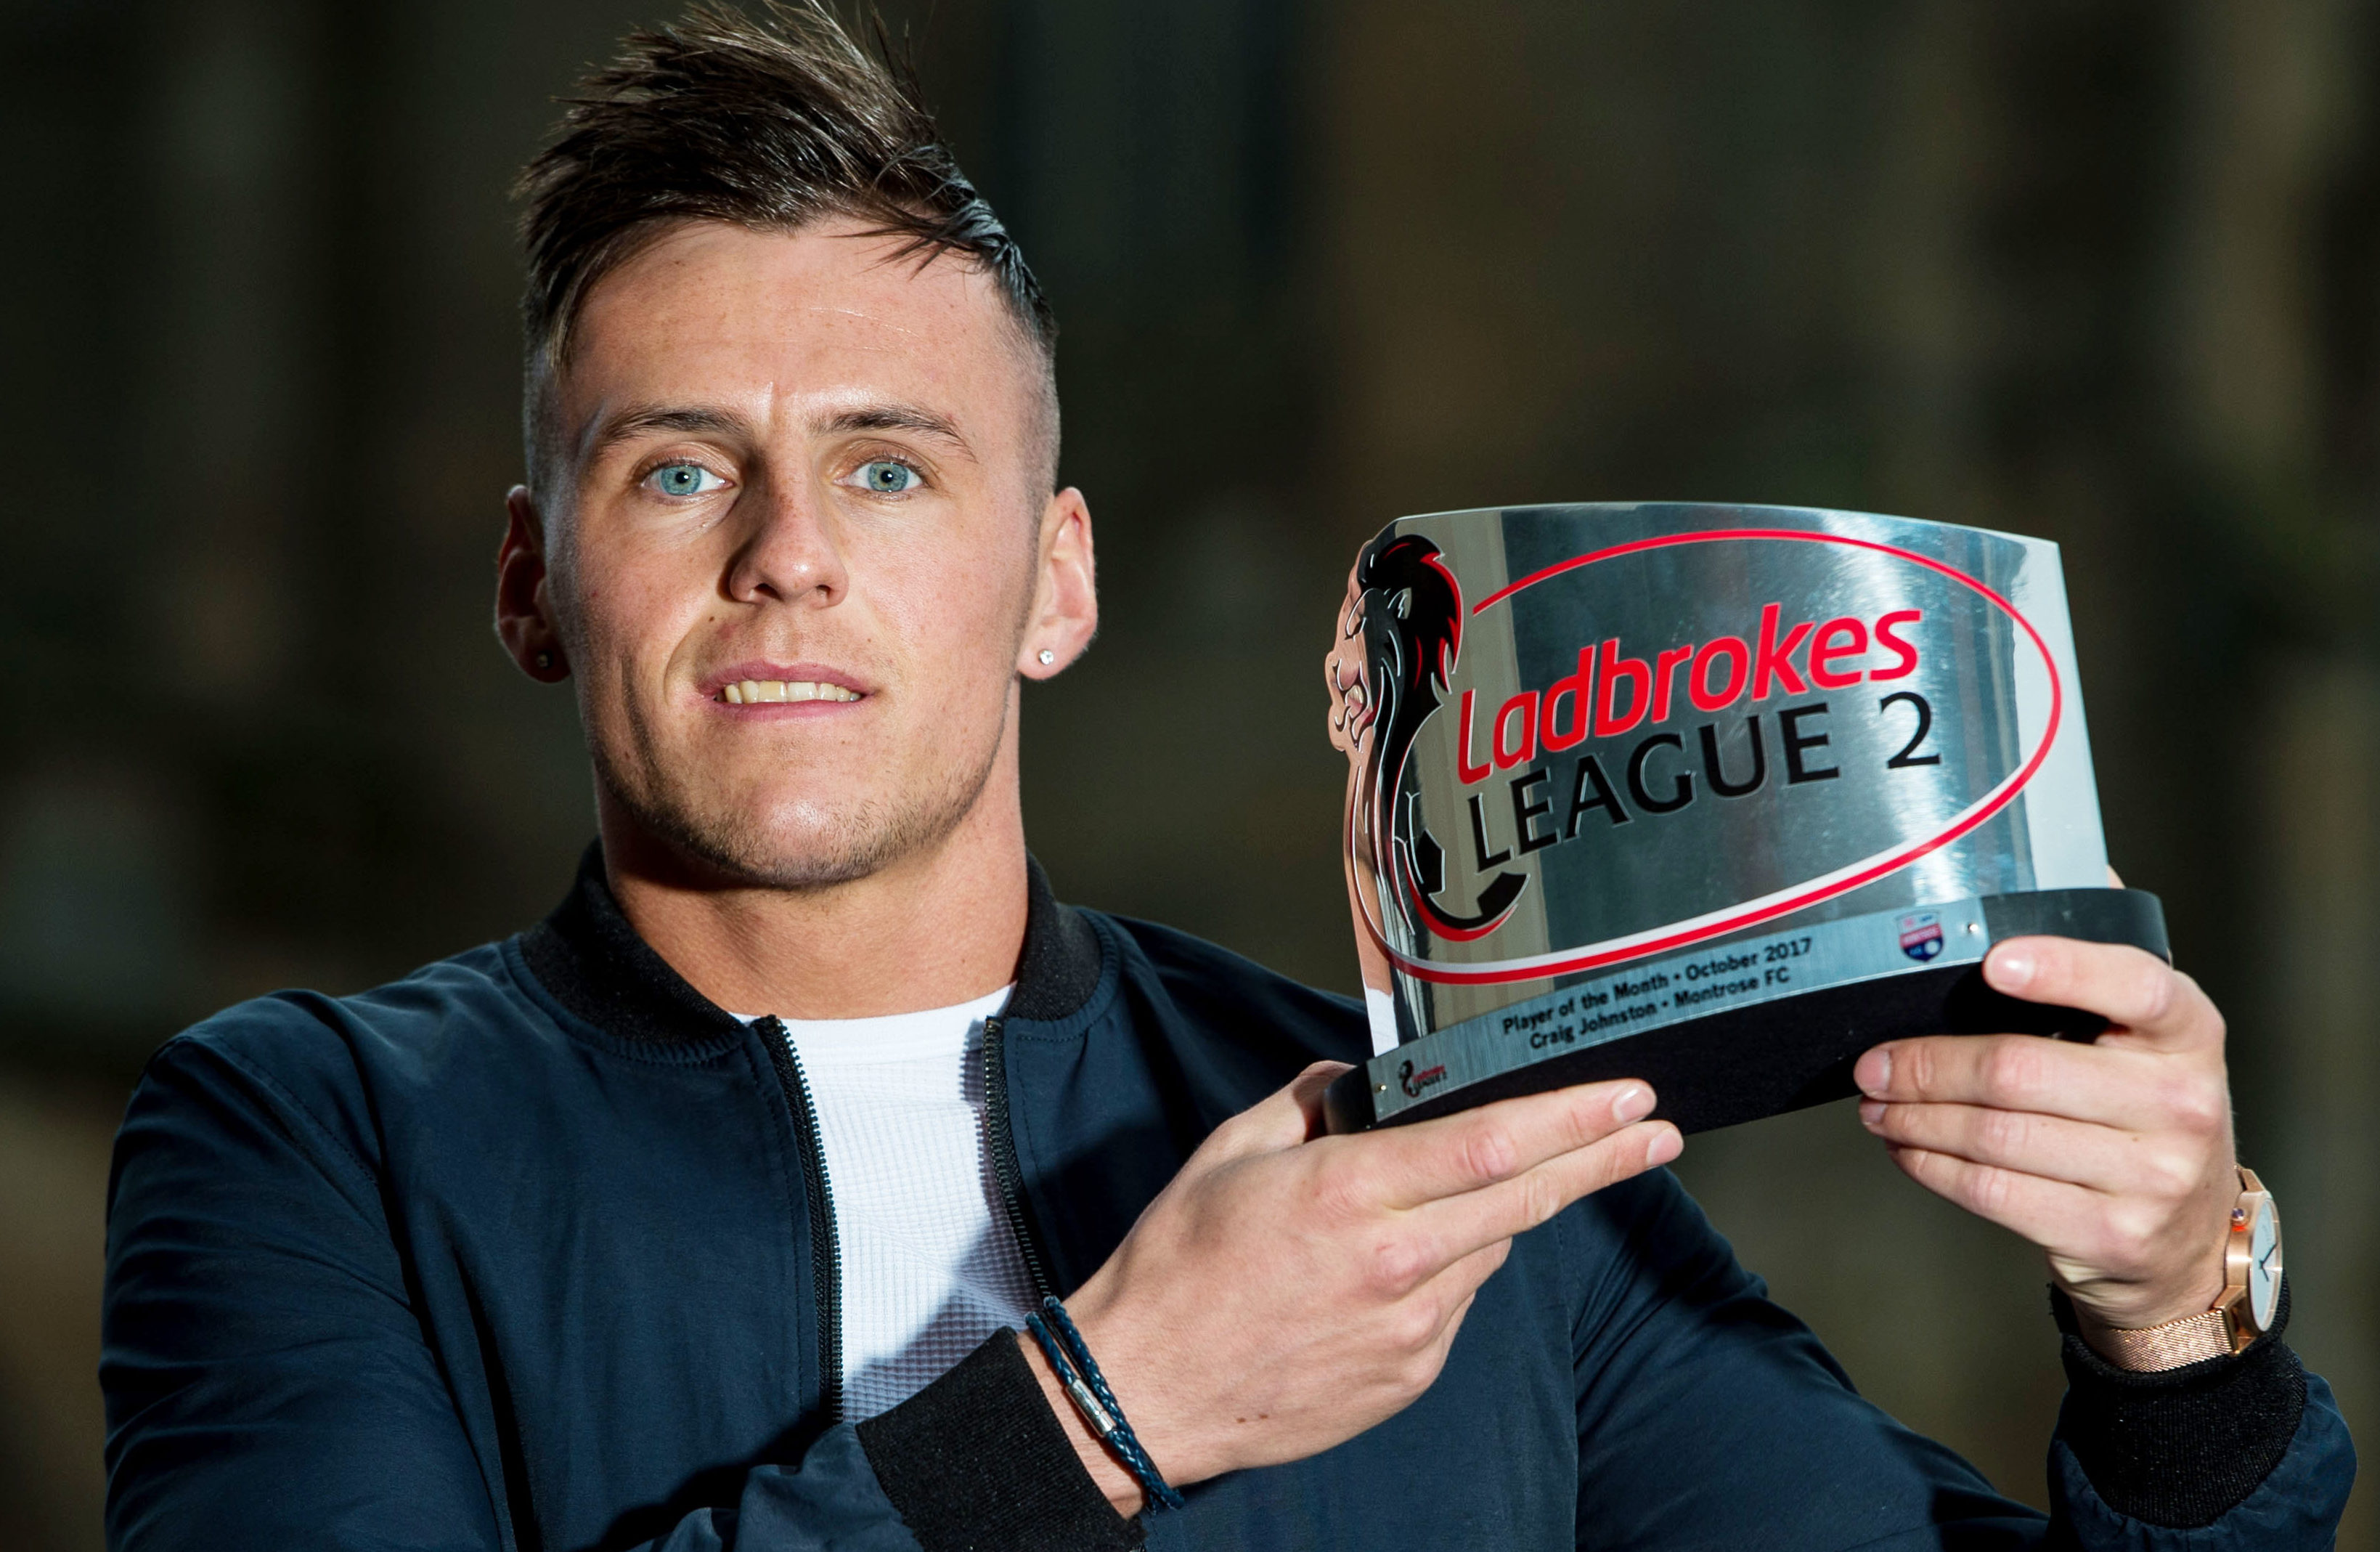 Craig Johnston collecting the Ladbrokes Division 2 player of the month award for October 2017.